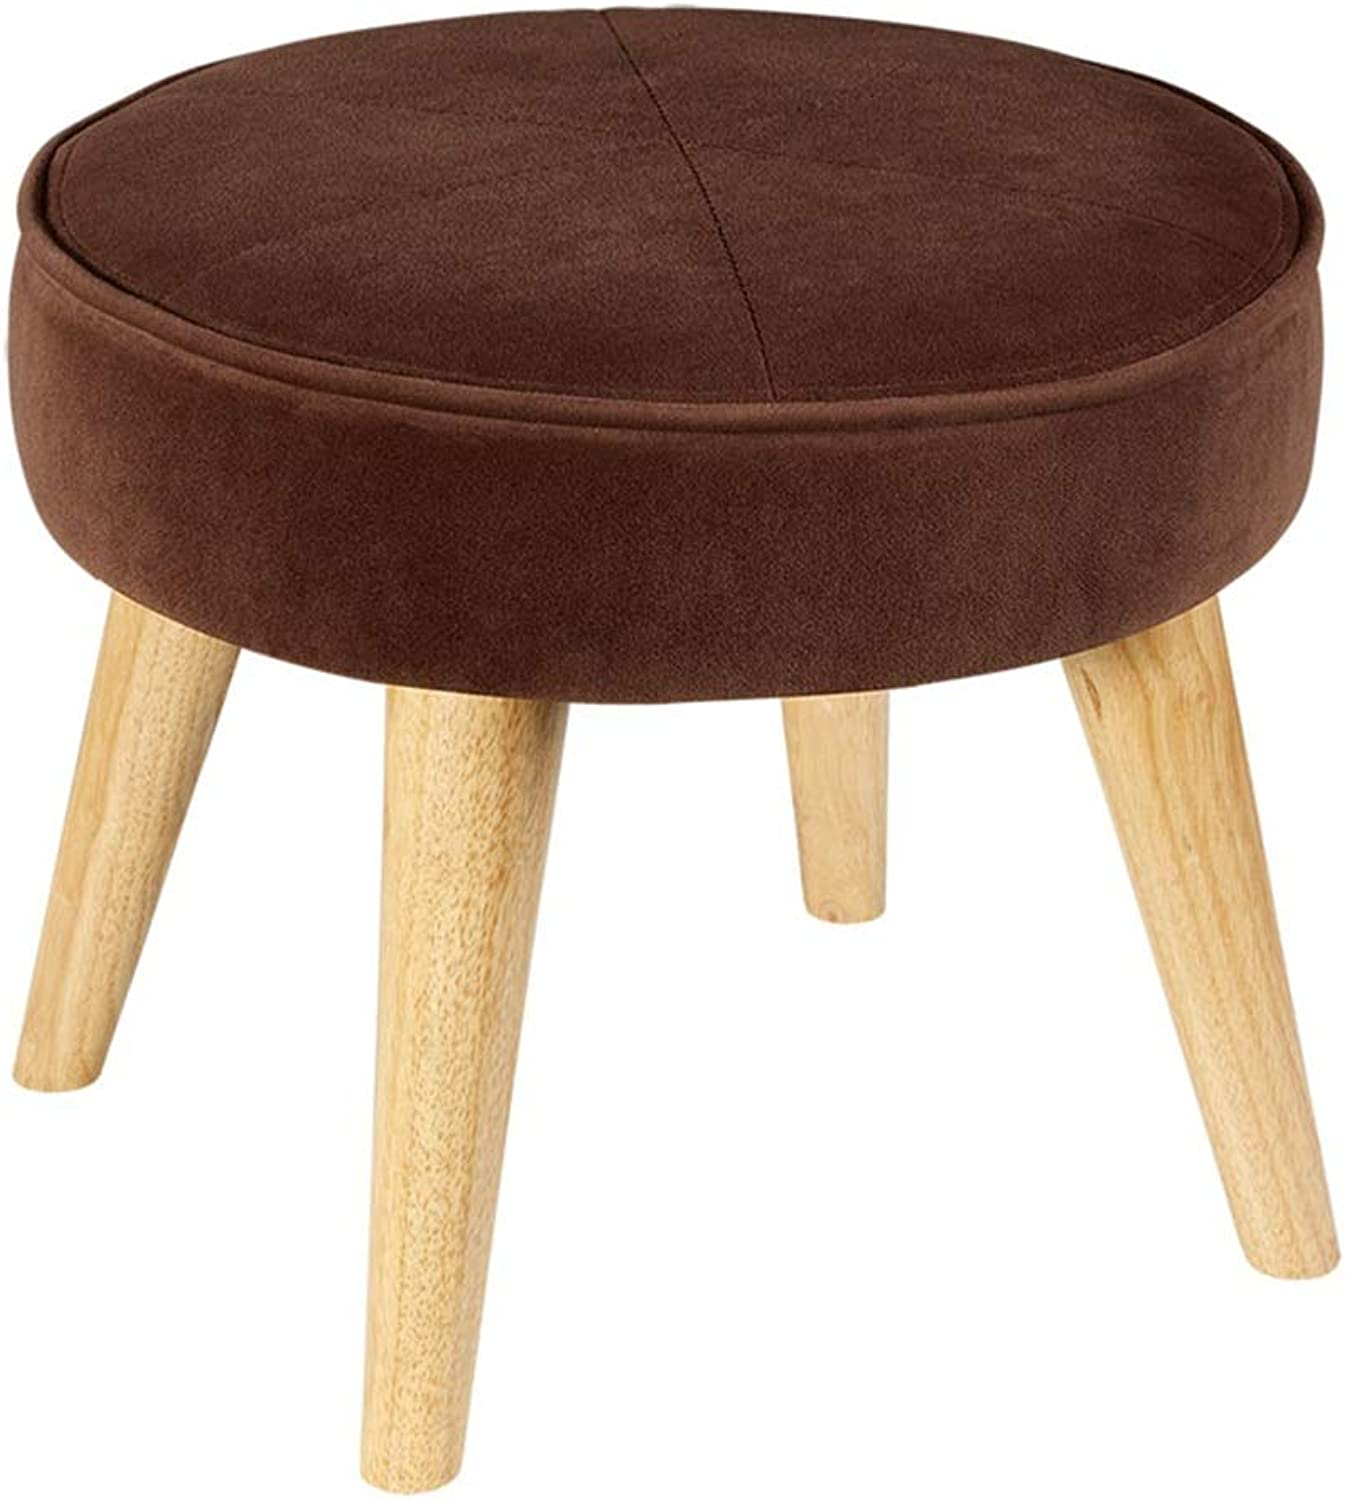 WEIYV-Barstools,bar Chair Change shoes Bench Cloth Sofa Stool Stool Solid Wood Ankle Low Stool Simple Modern Small Stool Seat (color   Coffee color, Size   36  40cm)